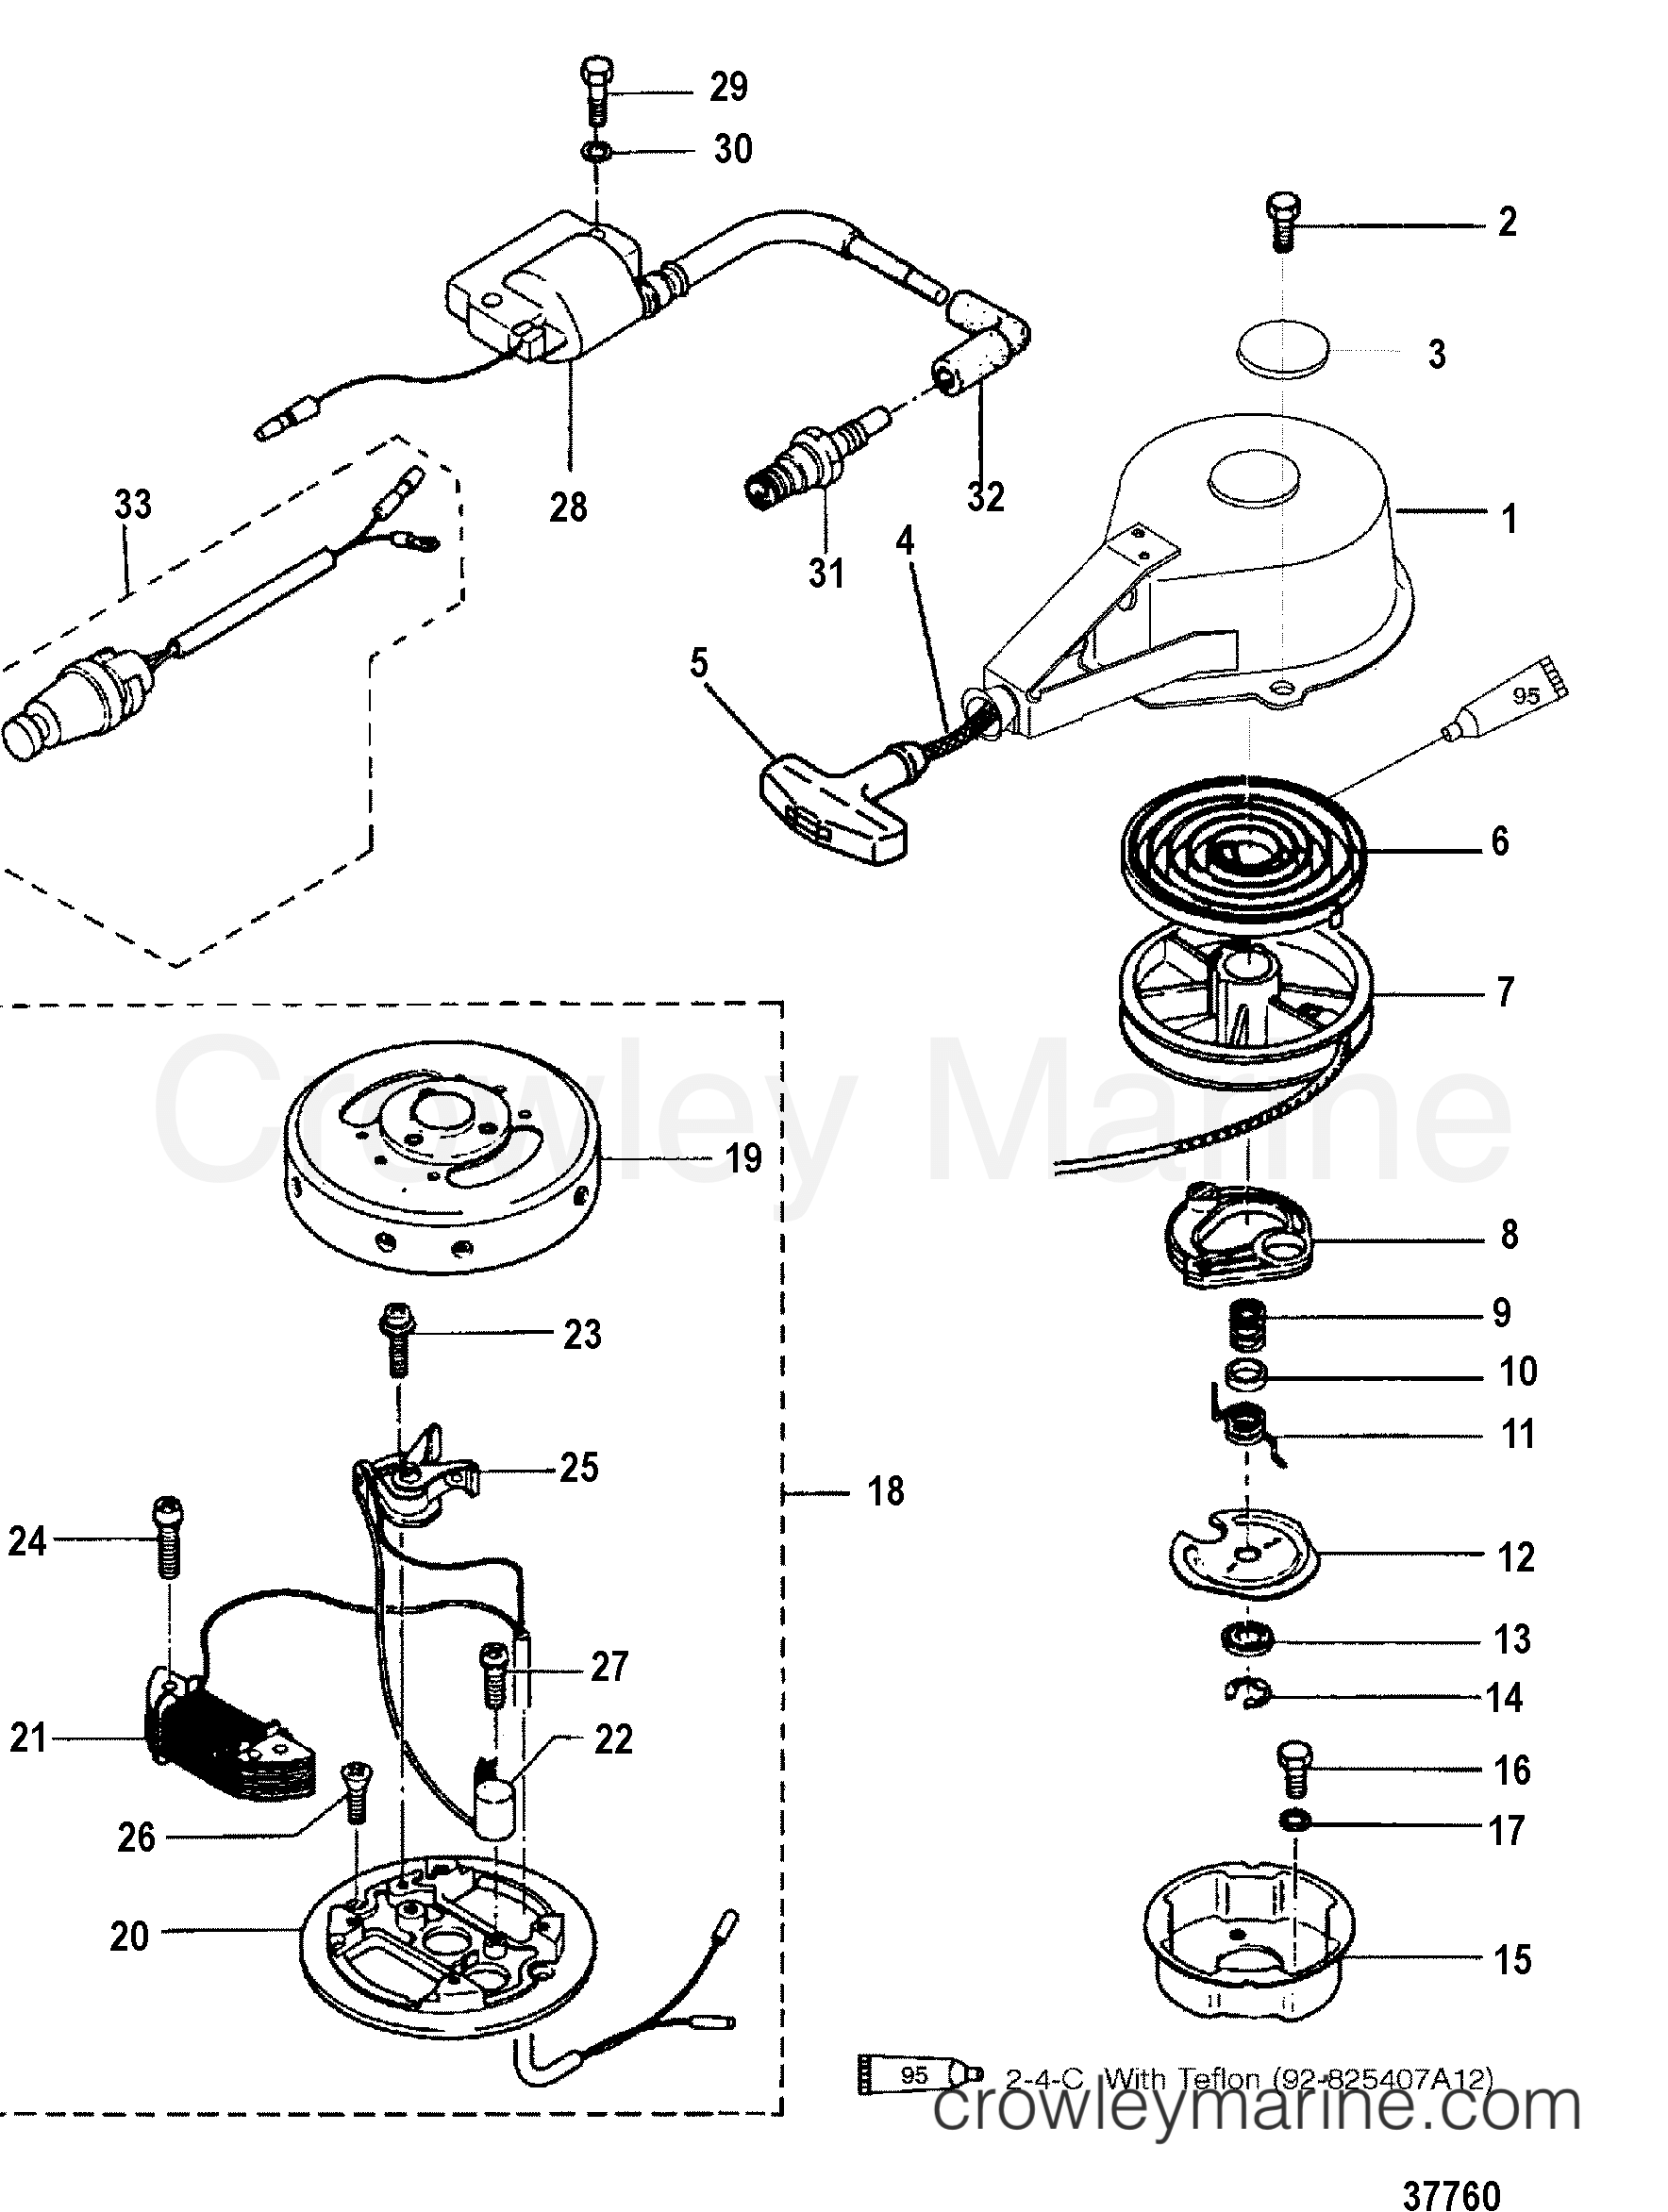 RECOIL AND IGNITION COMPONENTS(BREAKER POINT IGNITION